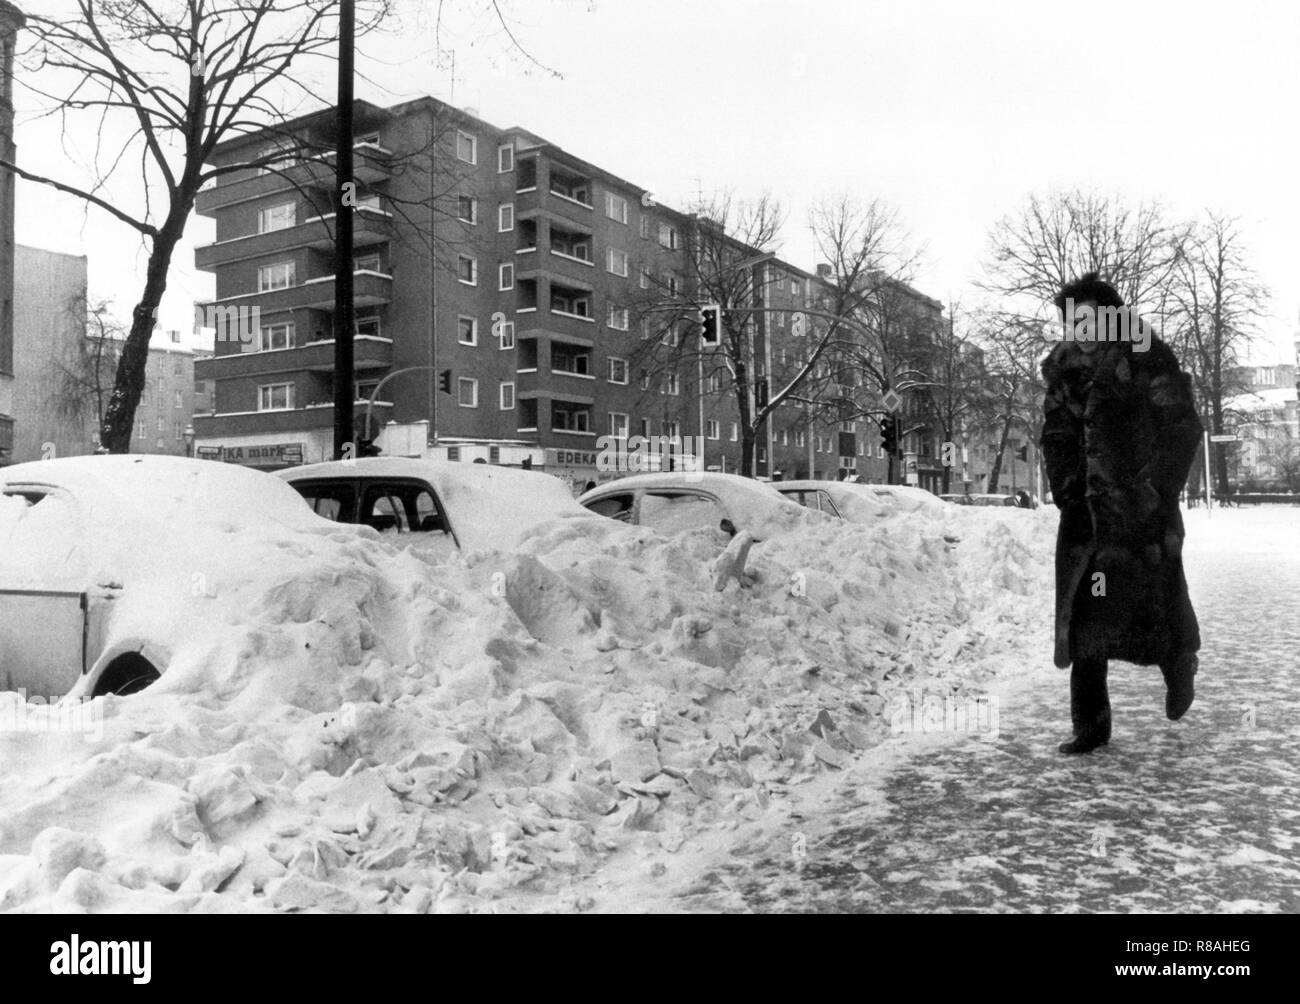 A pedestrian makes his way over the icy road, while the parked cars are almost covered by the snow, taken on 3 January 1979 in Berlin. The drop in temperature on December 29, 1978, led to snow chaos in northern Germany, the north of the GDR, Denmark, and southern Sweden. Partly the traffic and the power supply collapsed, localities were cut off from the outside world. In the Federal Republic alone, 17 people were killed because of the snow chaos. | usage worldwide - Stock Image